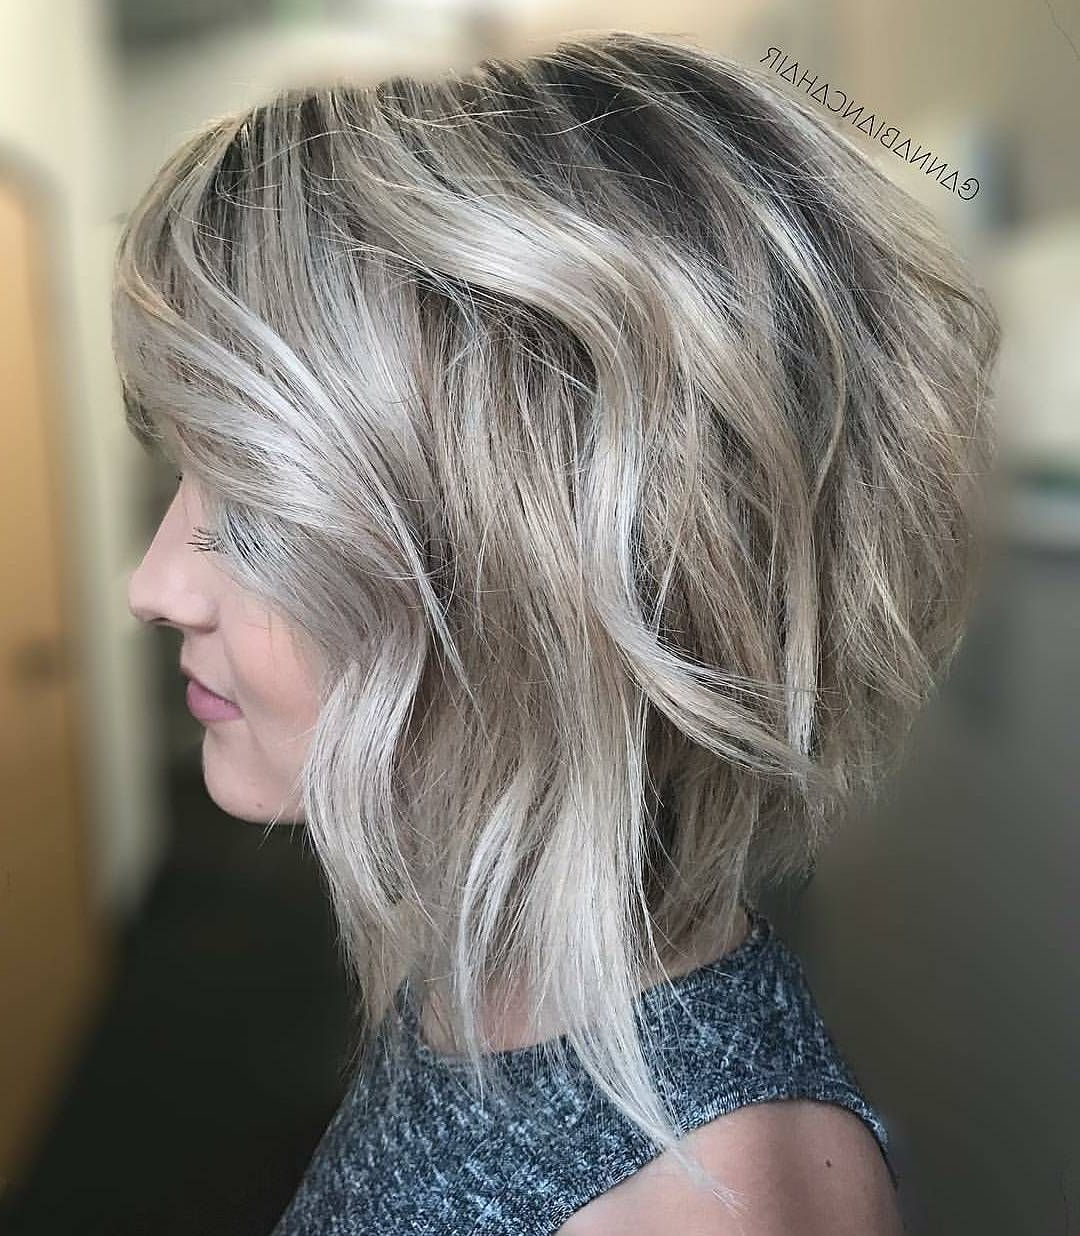 10 Messy Hairstyles For Short Hair – Quick Chic! Women Short Haircut Regarding Messy Pixie Haircuts With V Cut Layers (View 5 of 20)